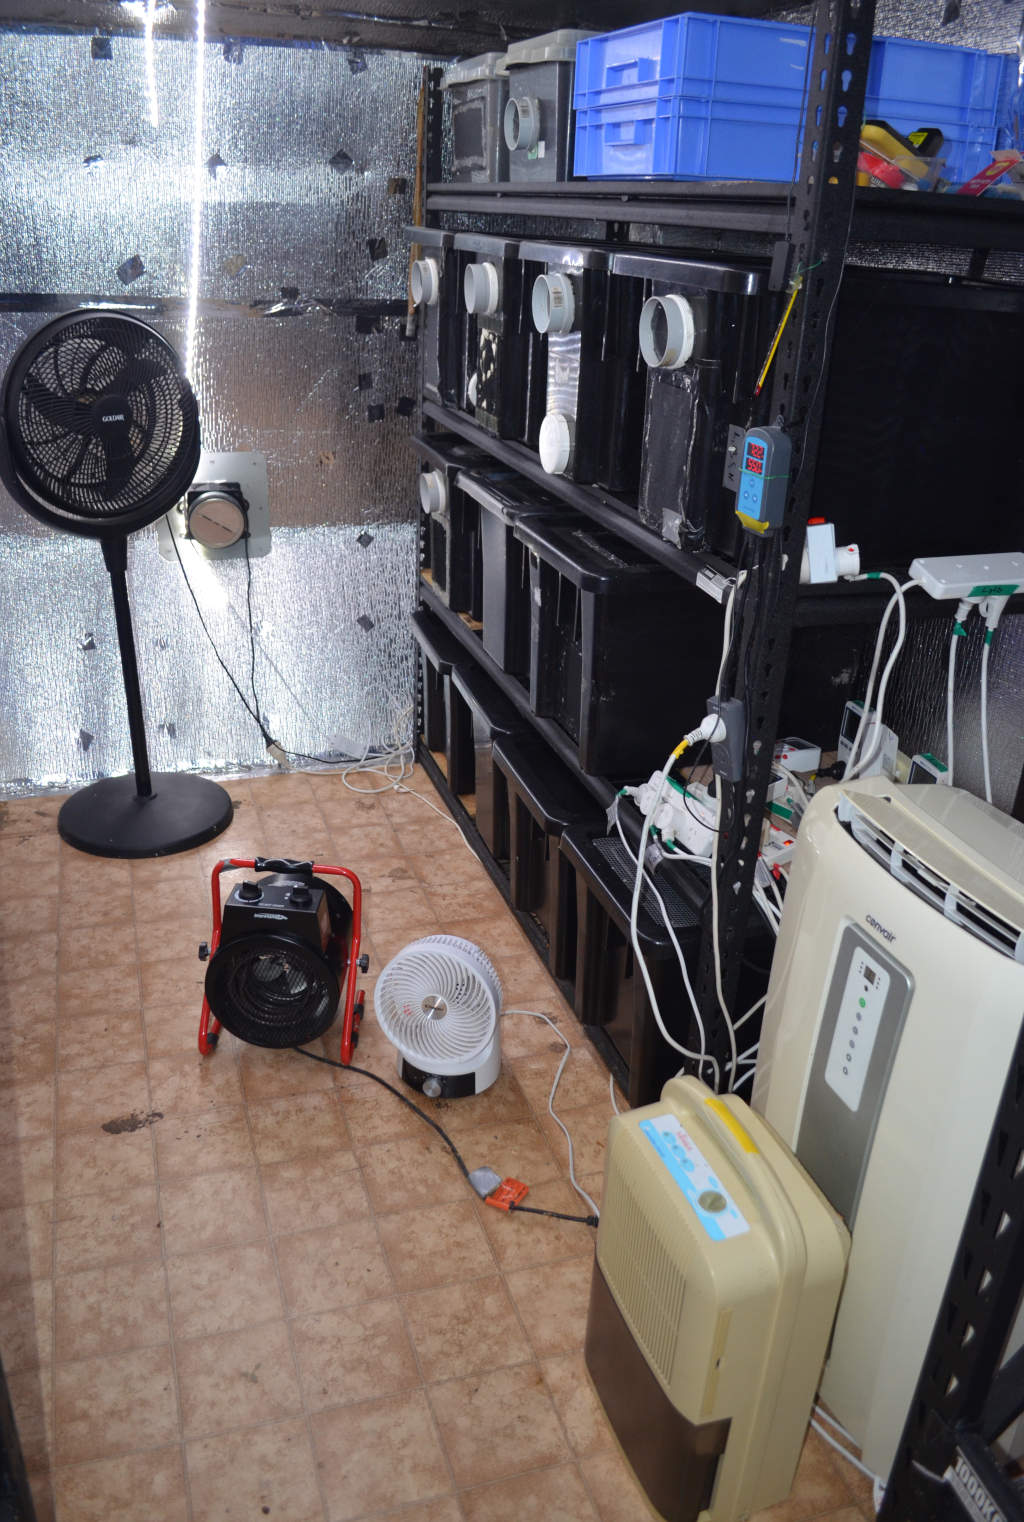 Photo of climate control equipment for a cricket farm. Includes black pedestal fan, black radiant heater, white 360 degree fan, cream air conditioner and dehumidifier.